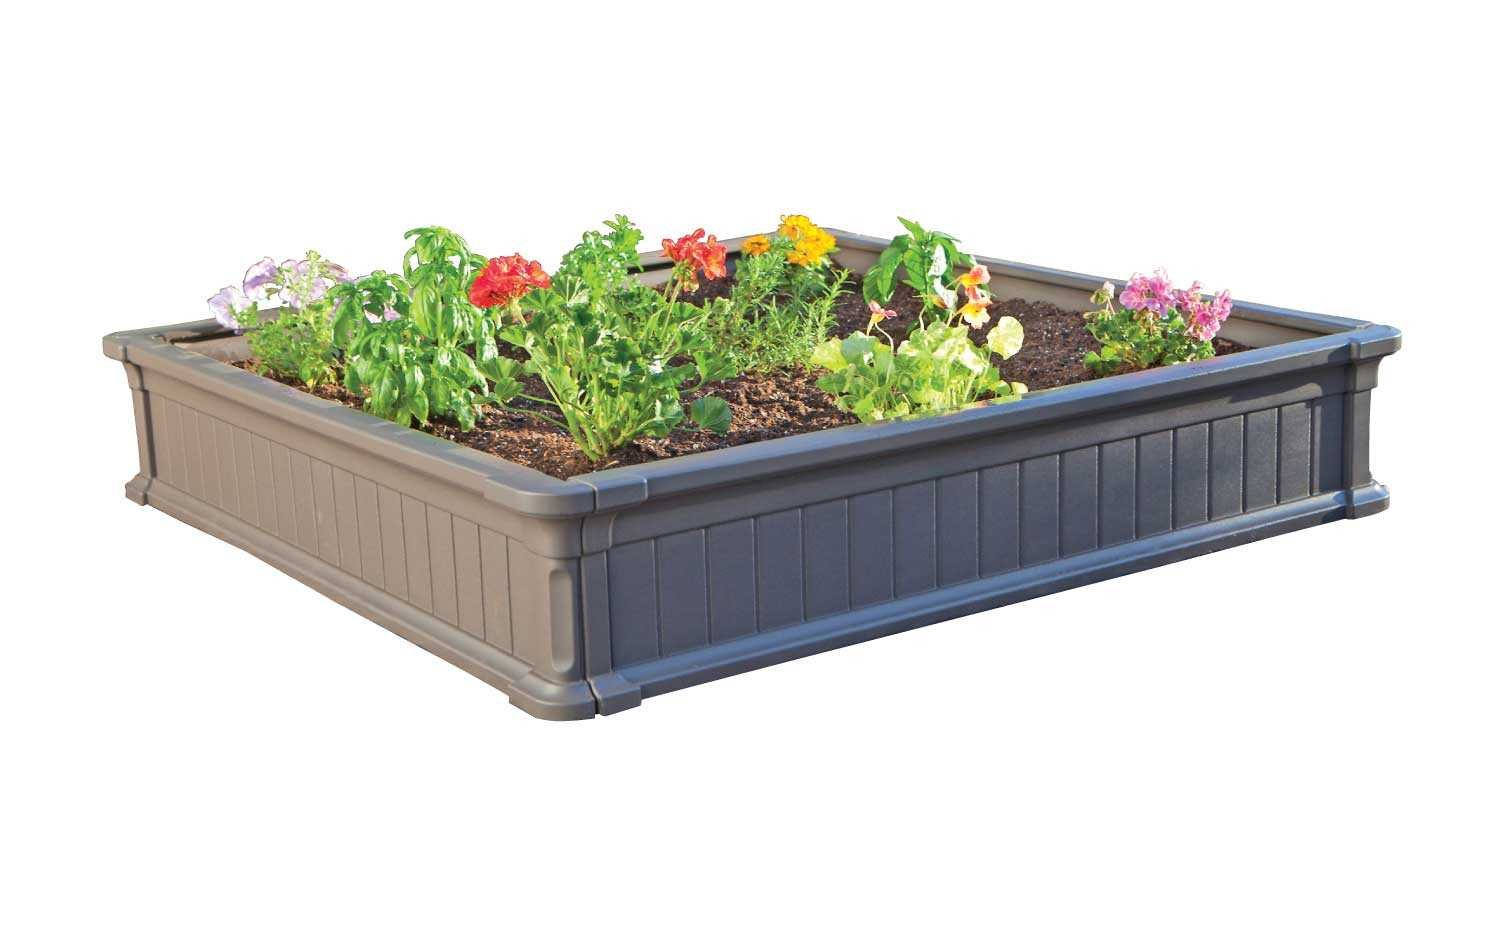 amazoncom lifetime 60069 raised garden bed kit 4 by 4 feet pack of 3 garden border edging garden outdoor - Garden Bed